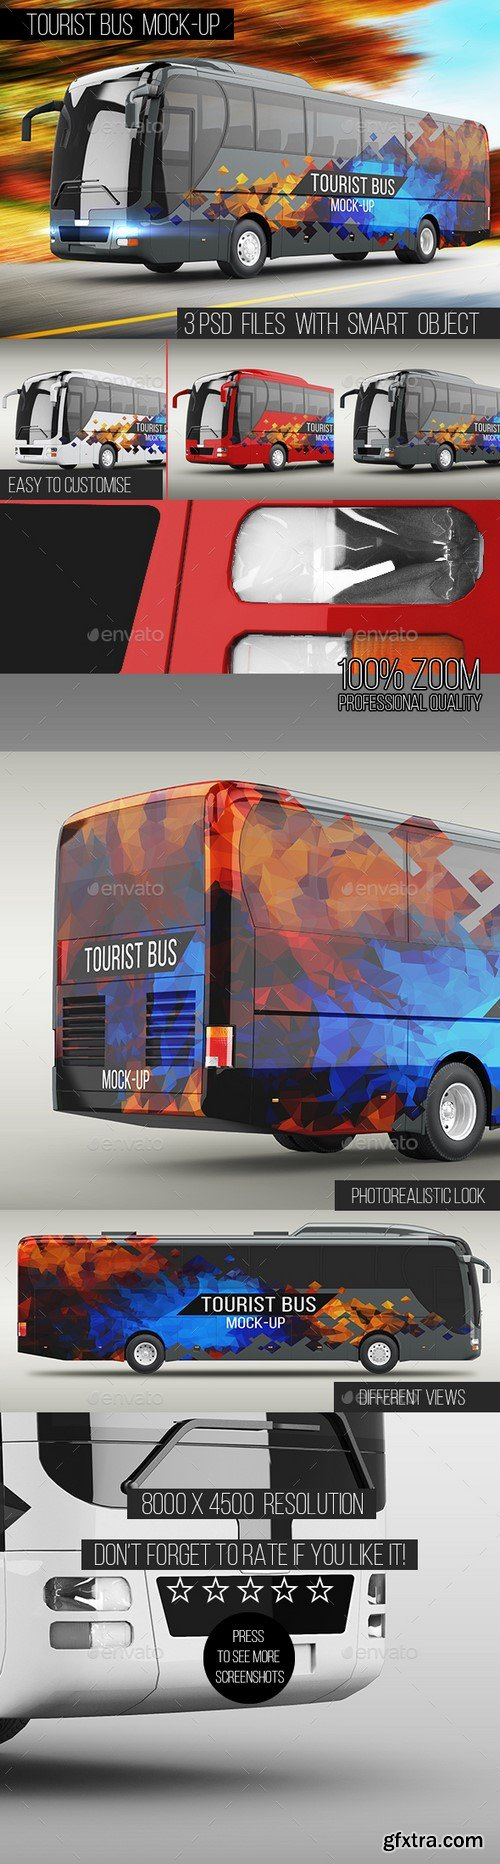 Graphicriver - Tourist Bus Mock-Up - 16130721